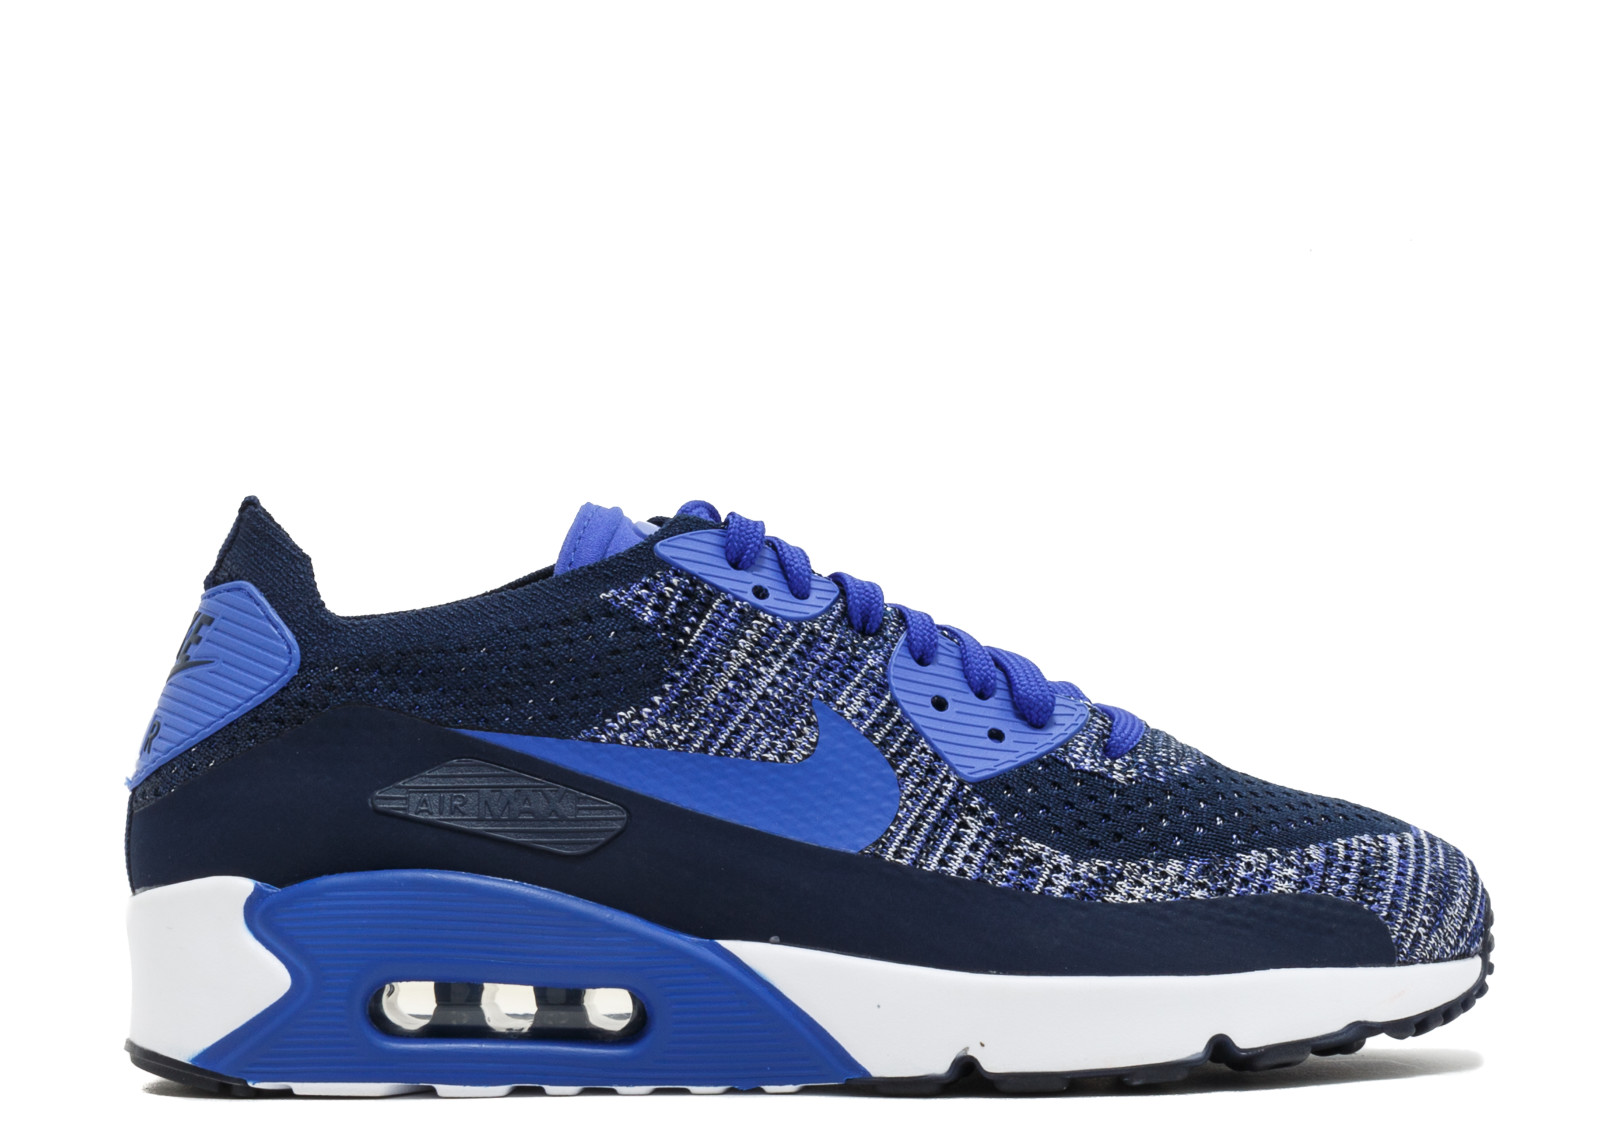 ad236c4b5287 Prev Air Max 90 Ultra 2.0 Flynit Navy Paramount Blue College 875943-400.  Zoom